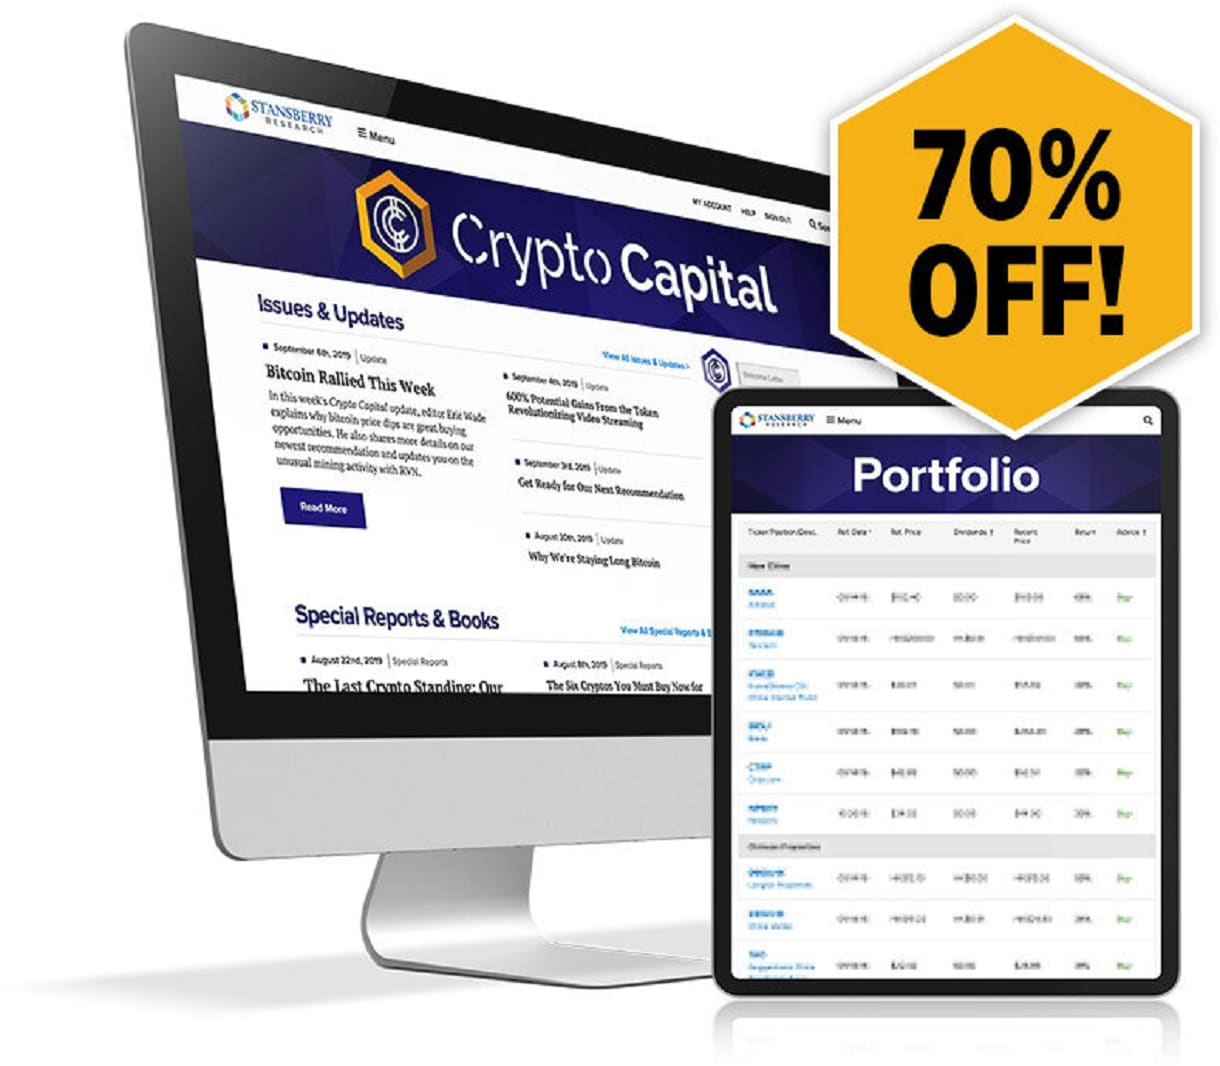 Eric Wade's Crypto Capital Review - 70% OFF